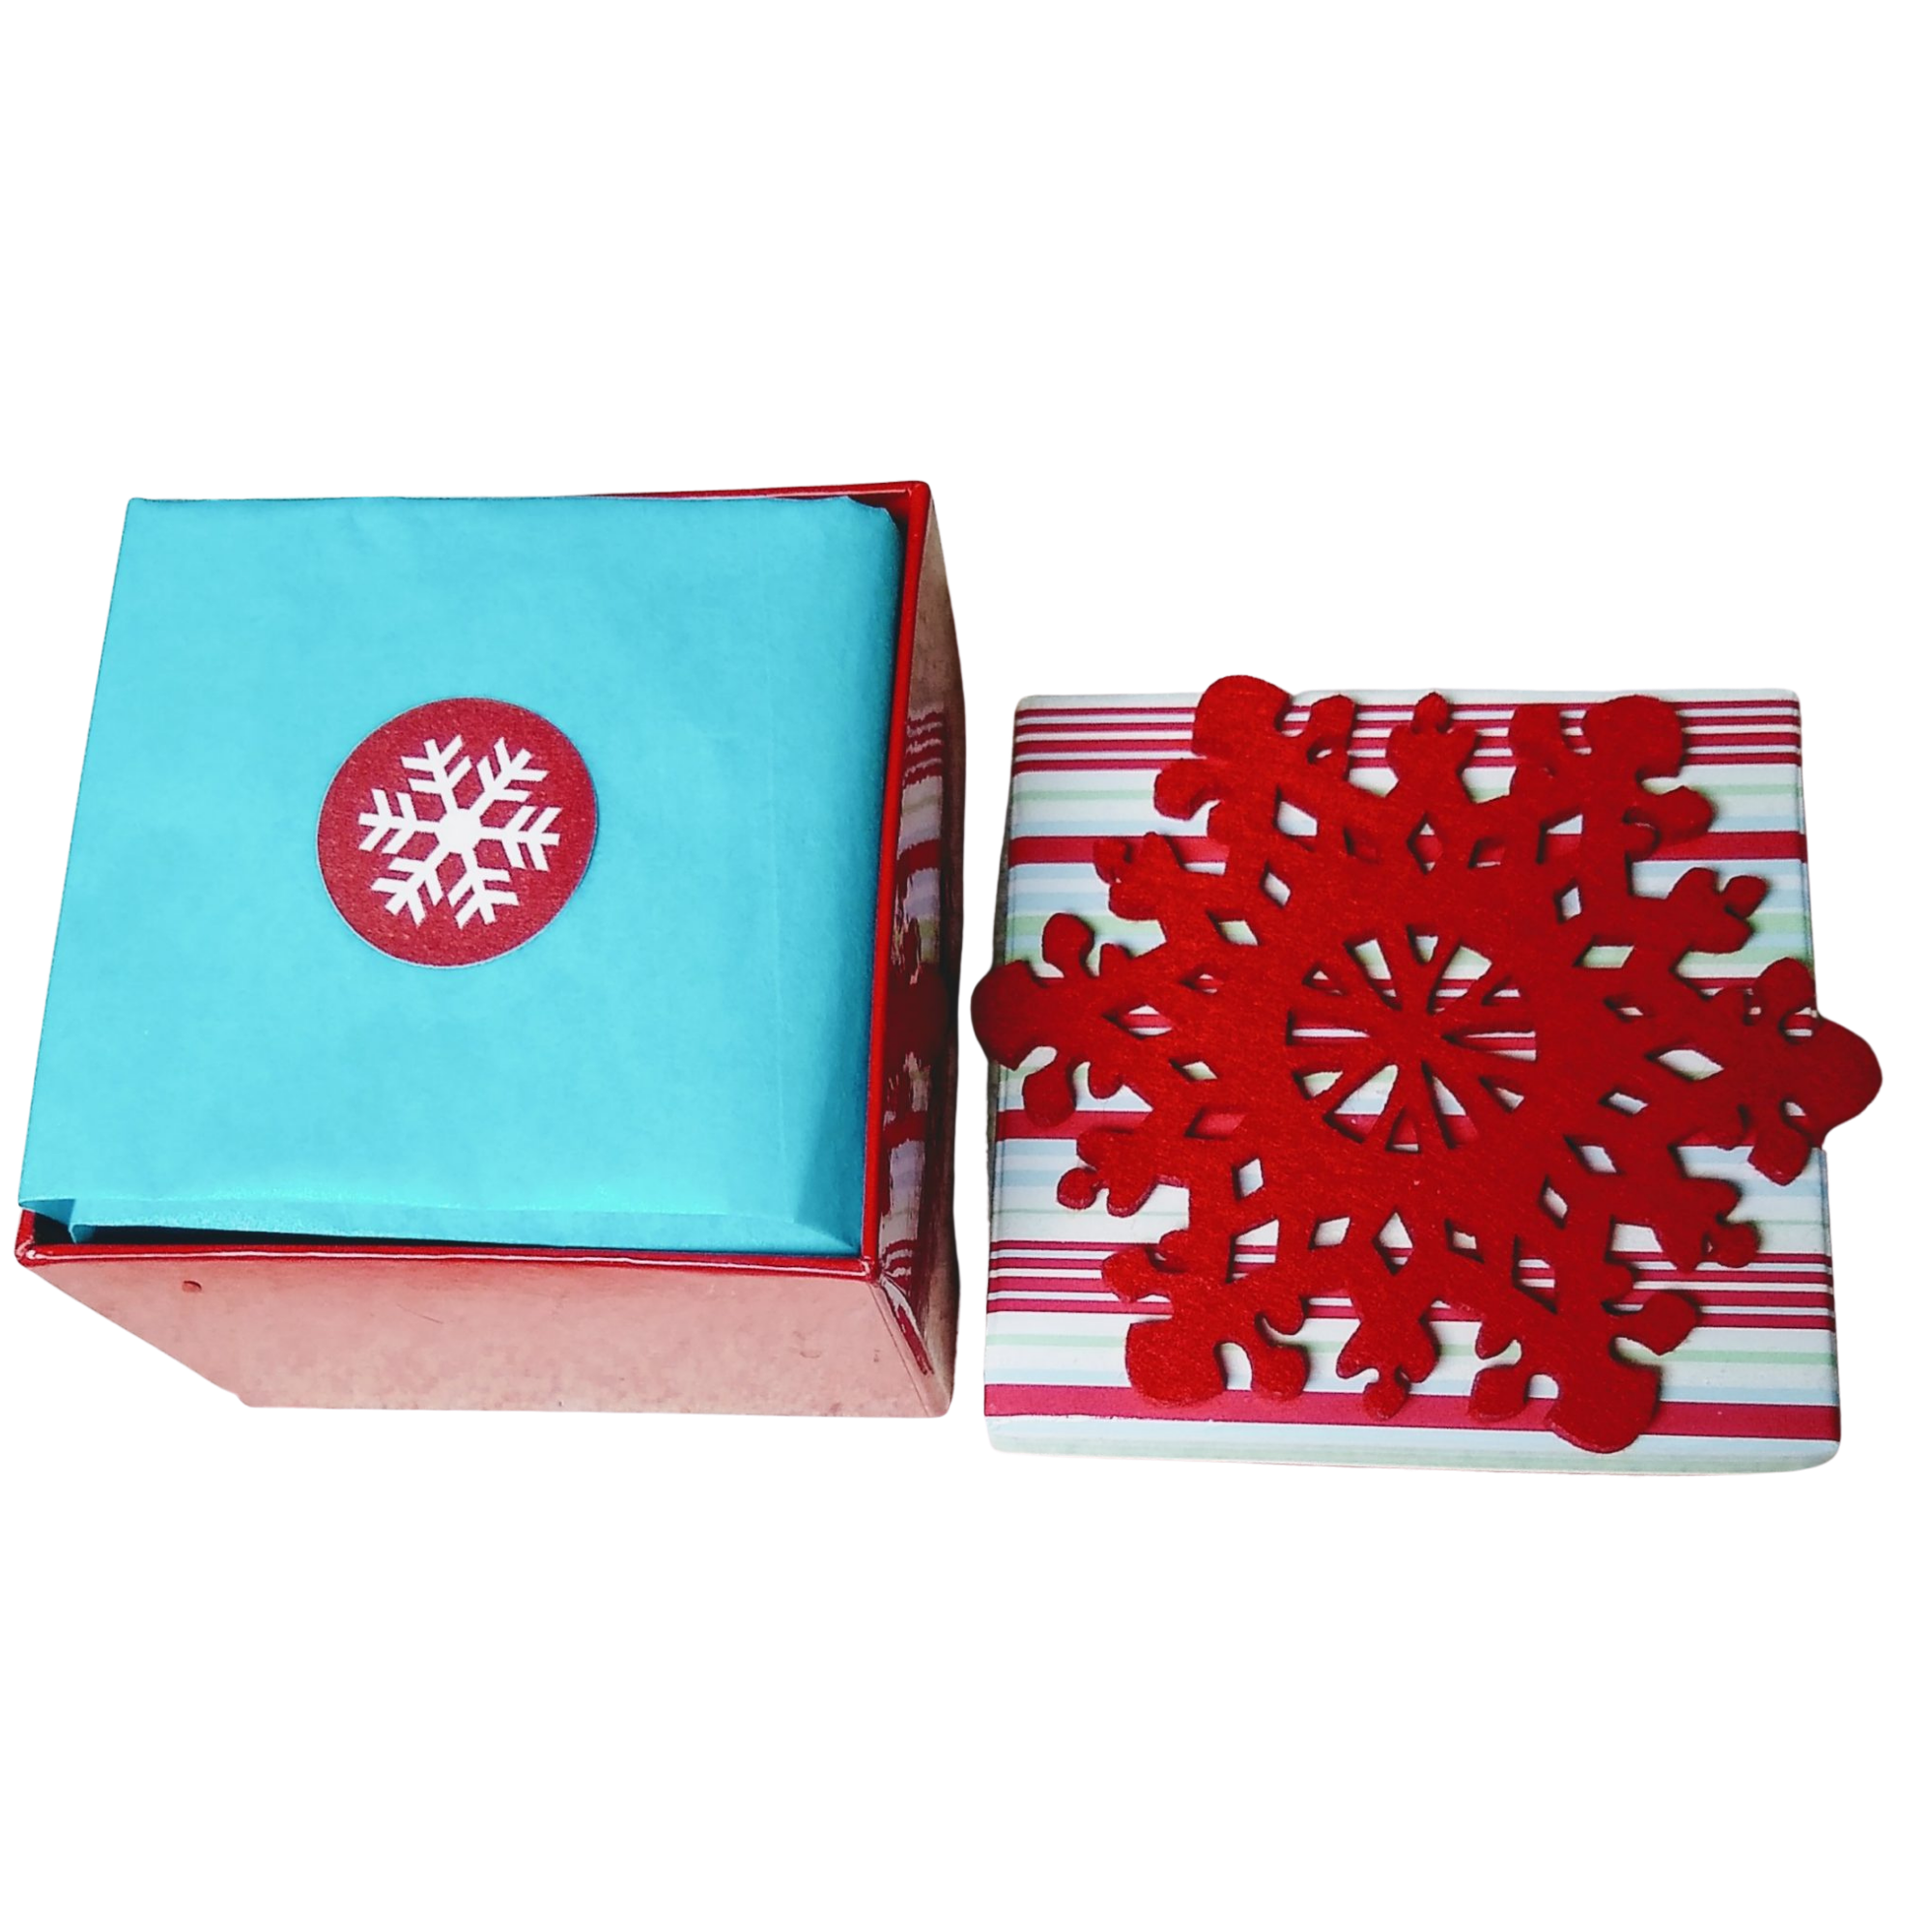 Snowflake Candle Box Includes Candles and Holders